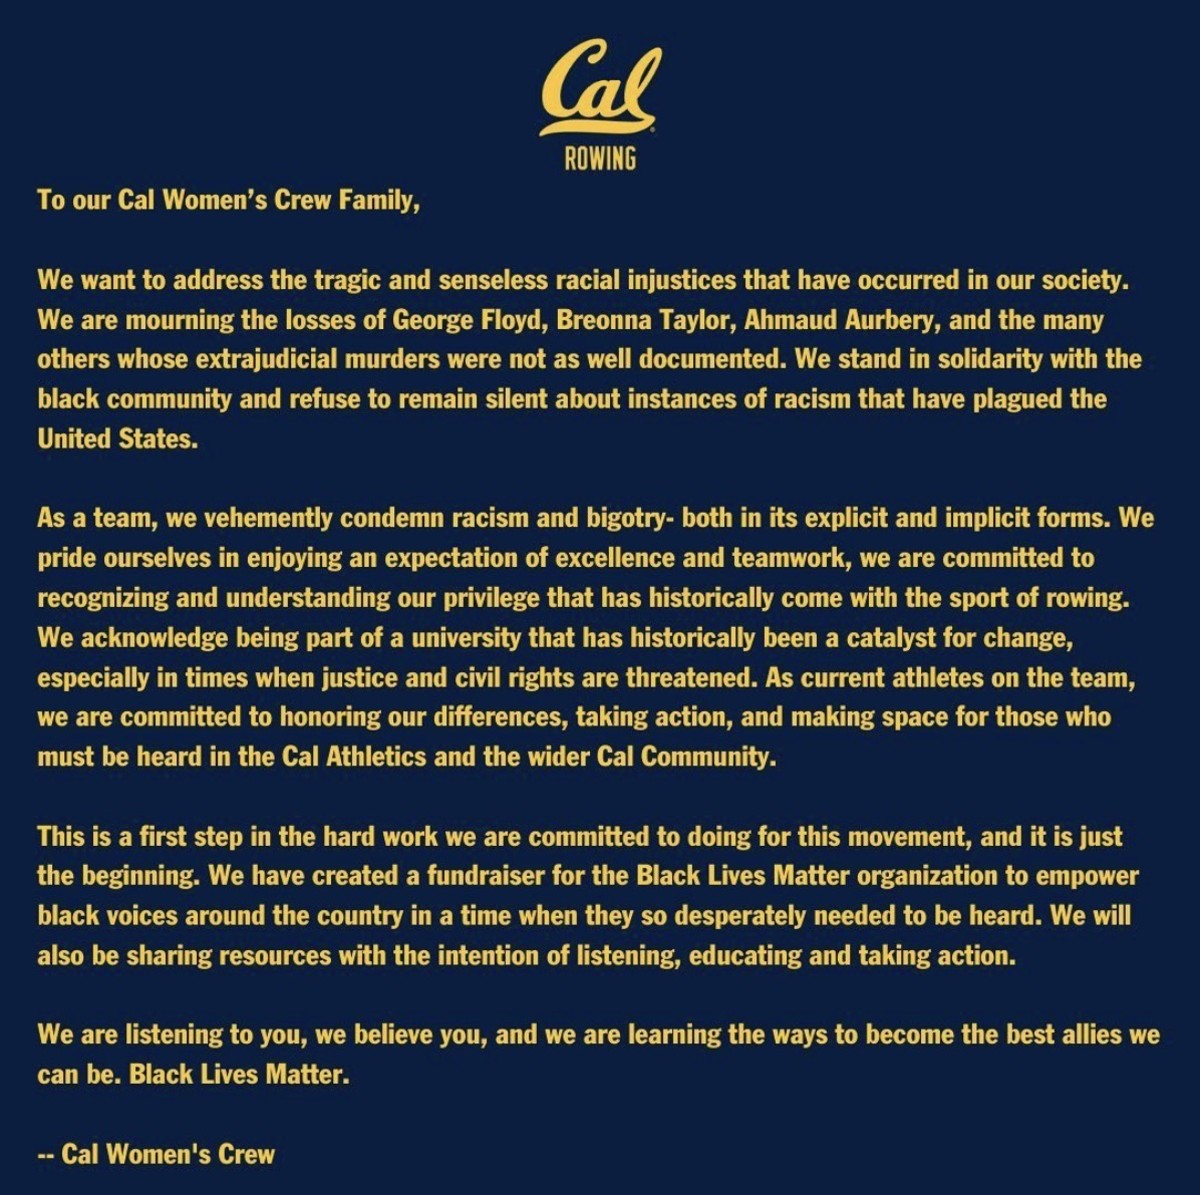 The Cal women's crew letter to their community